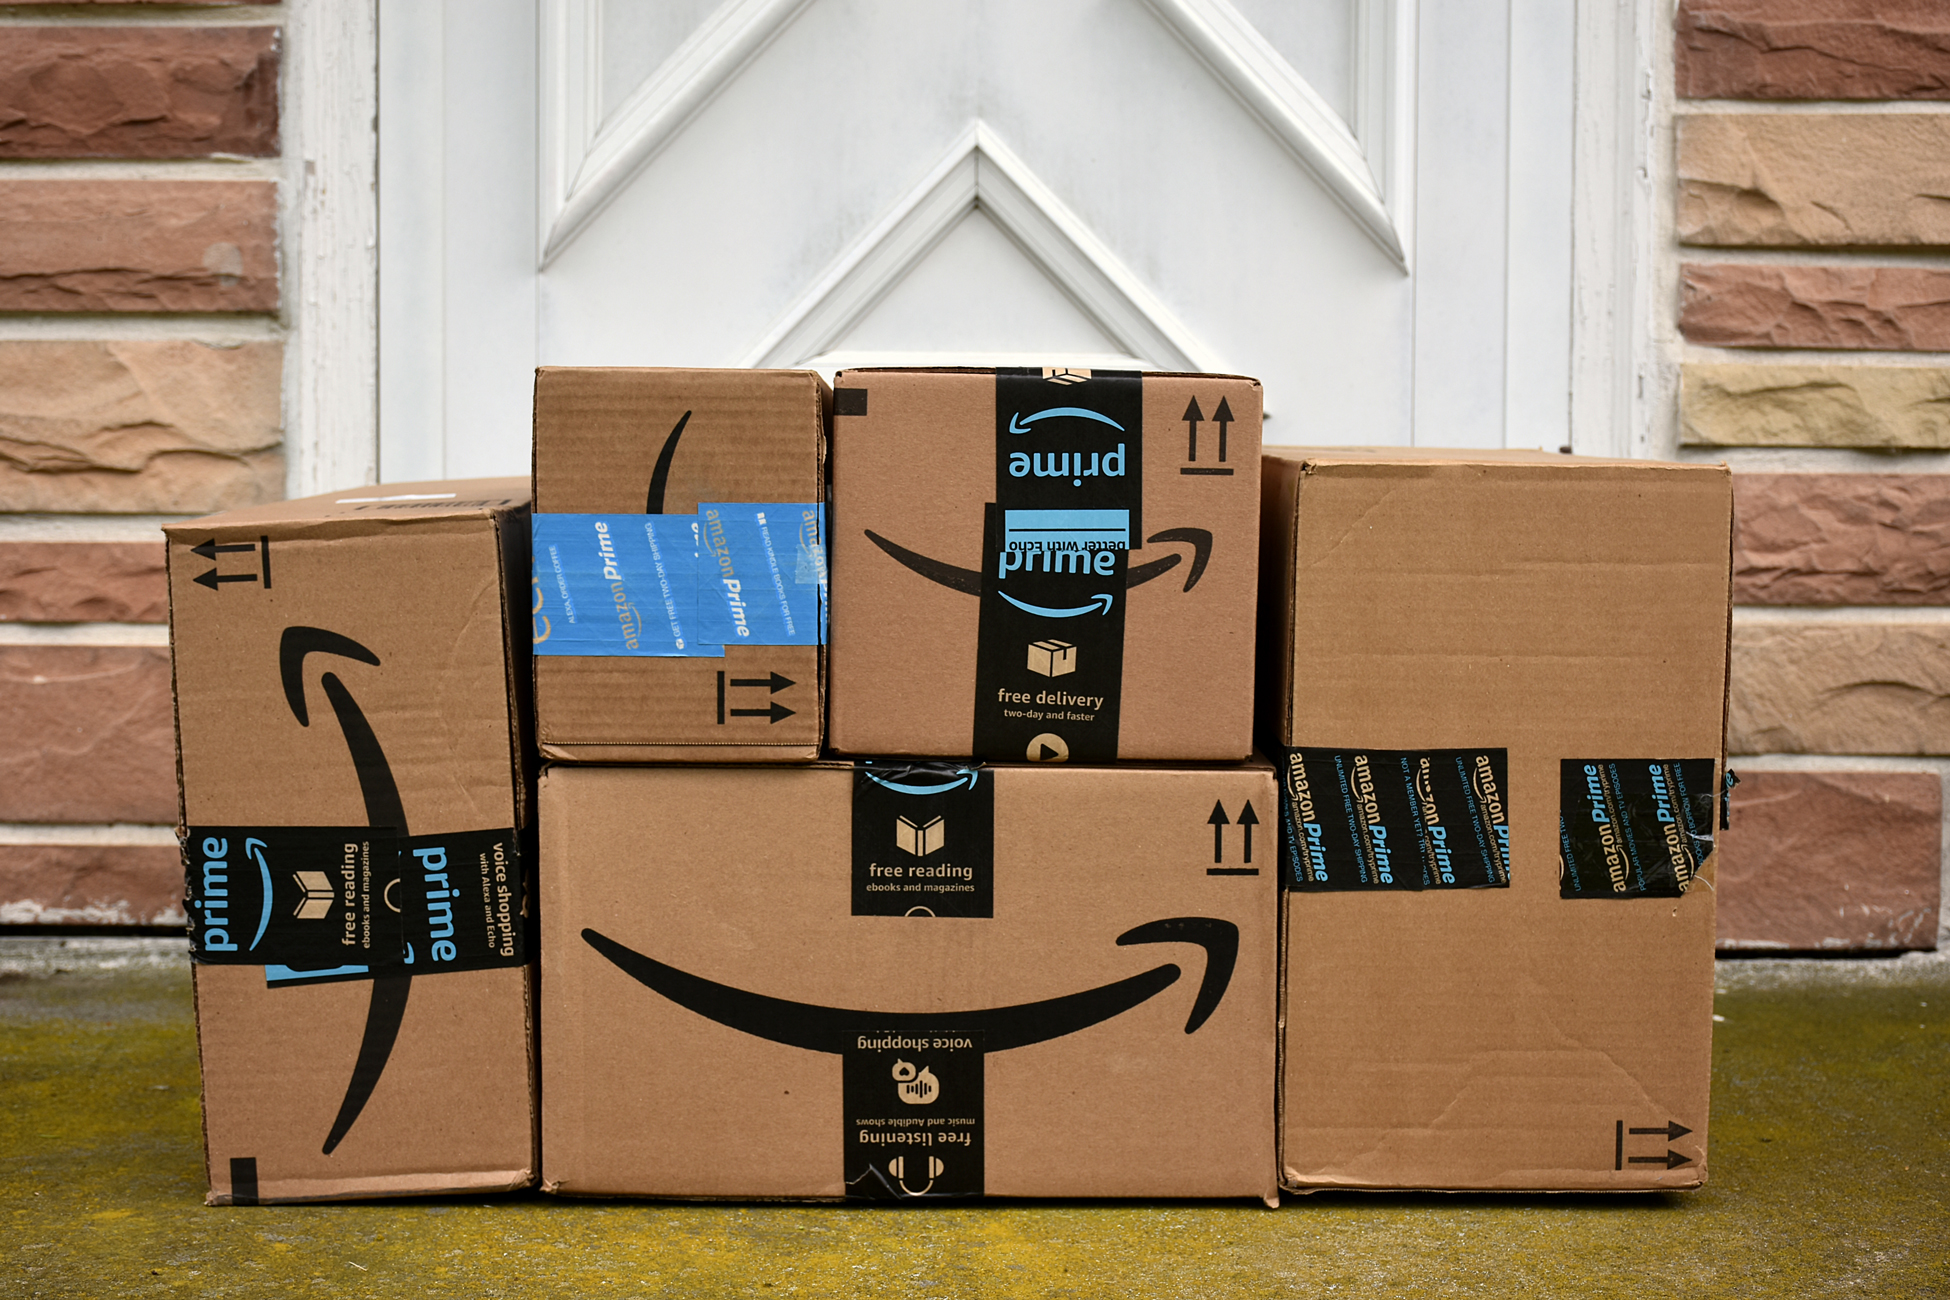 Amazon boxes at someones doorstep